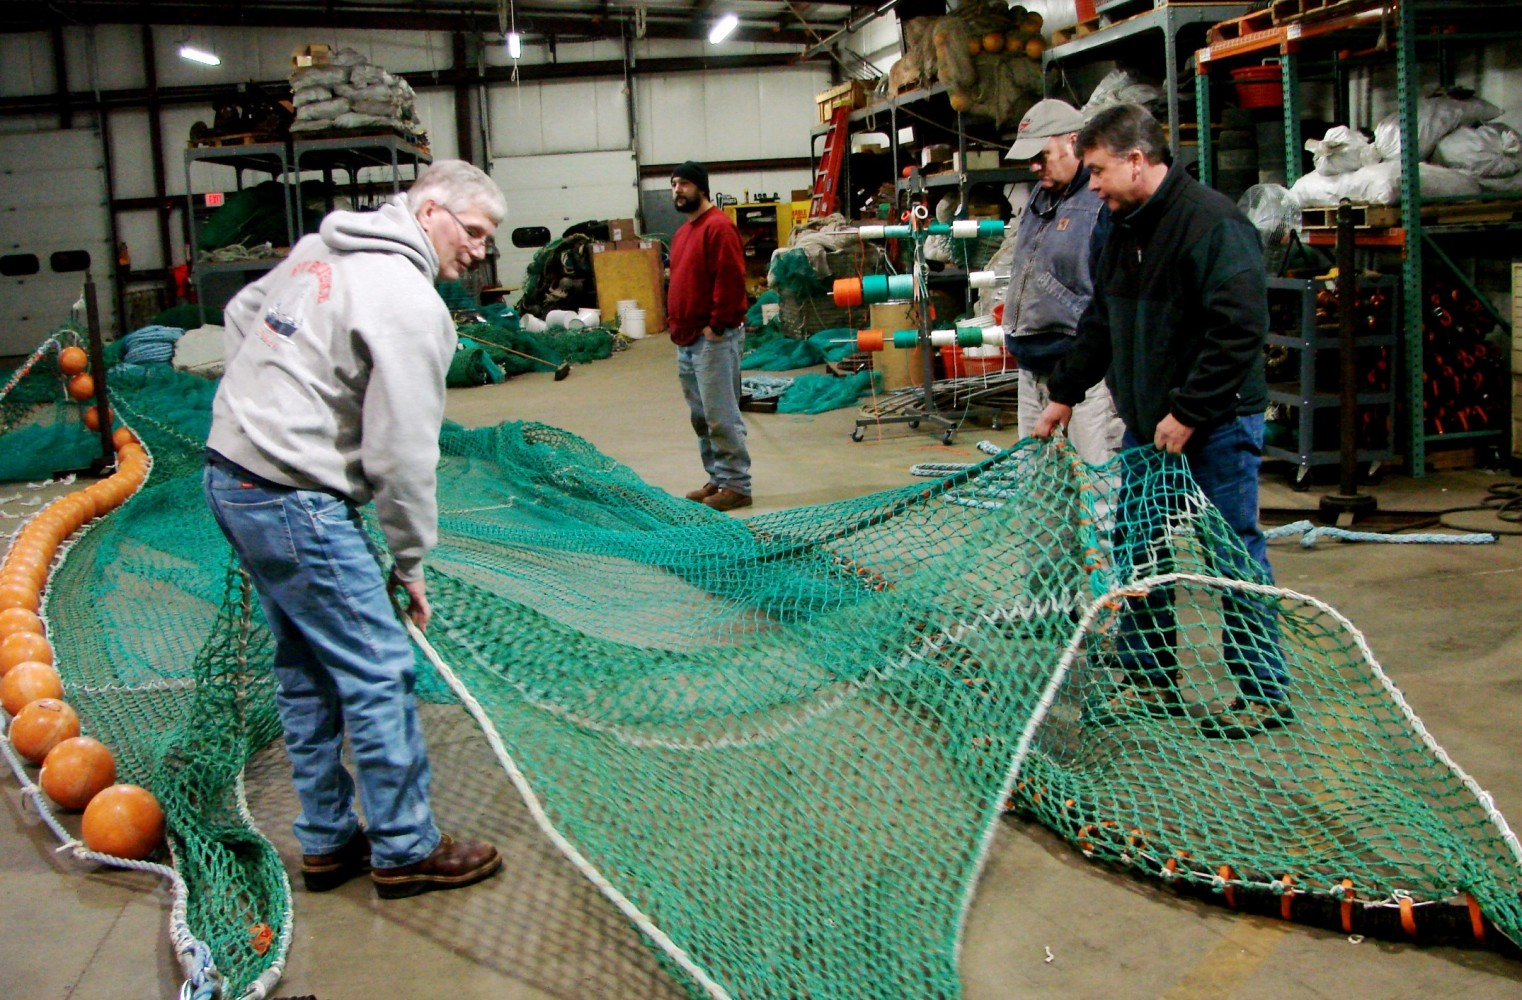 NOAA Survey Trawl Net